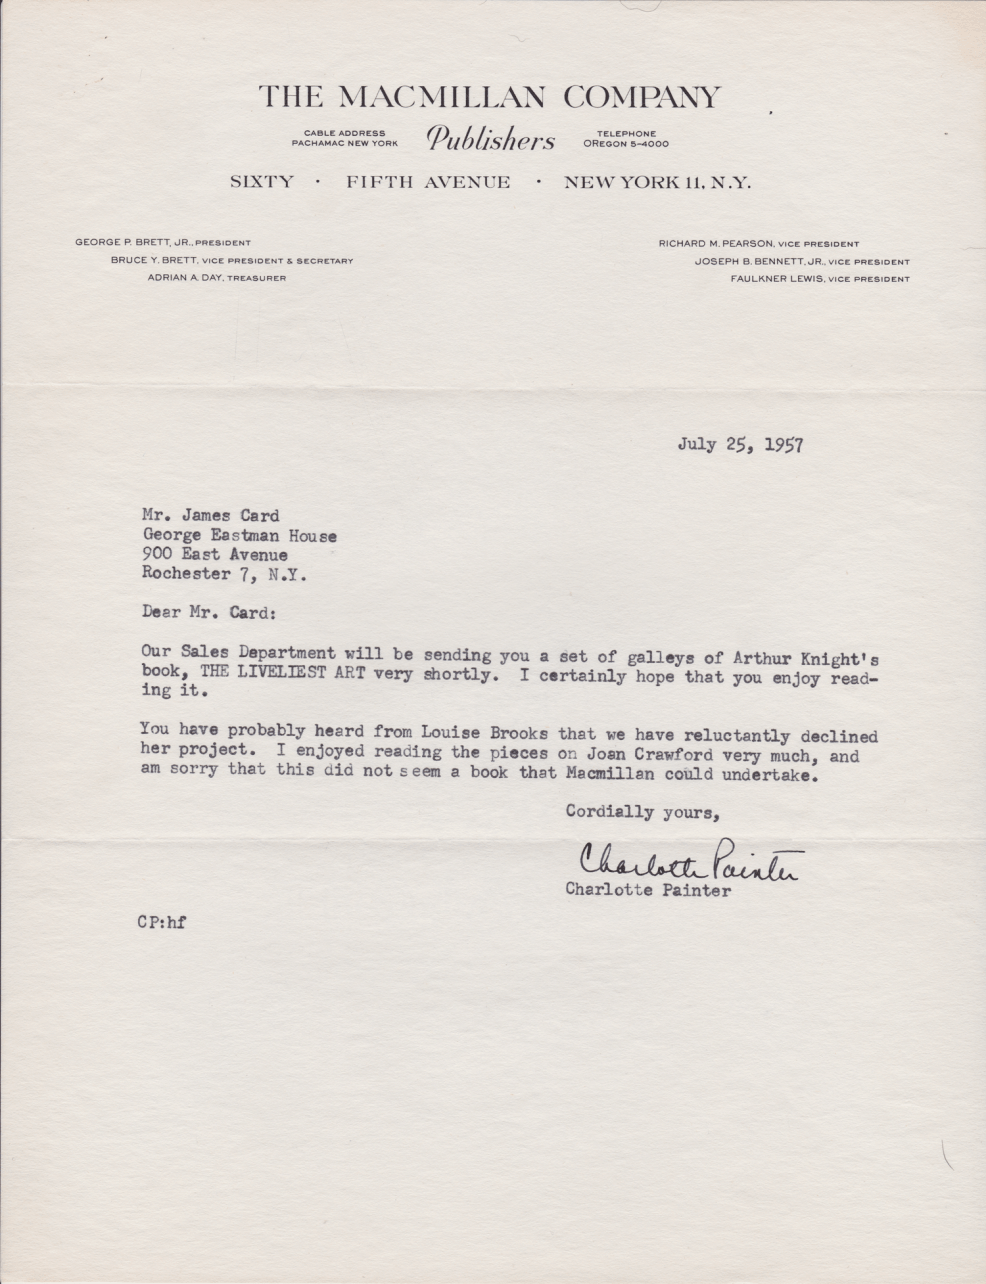 1957 Letter from The Macmillan Company to James Card, about Louise Brooks